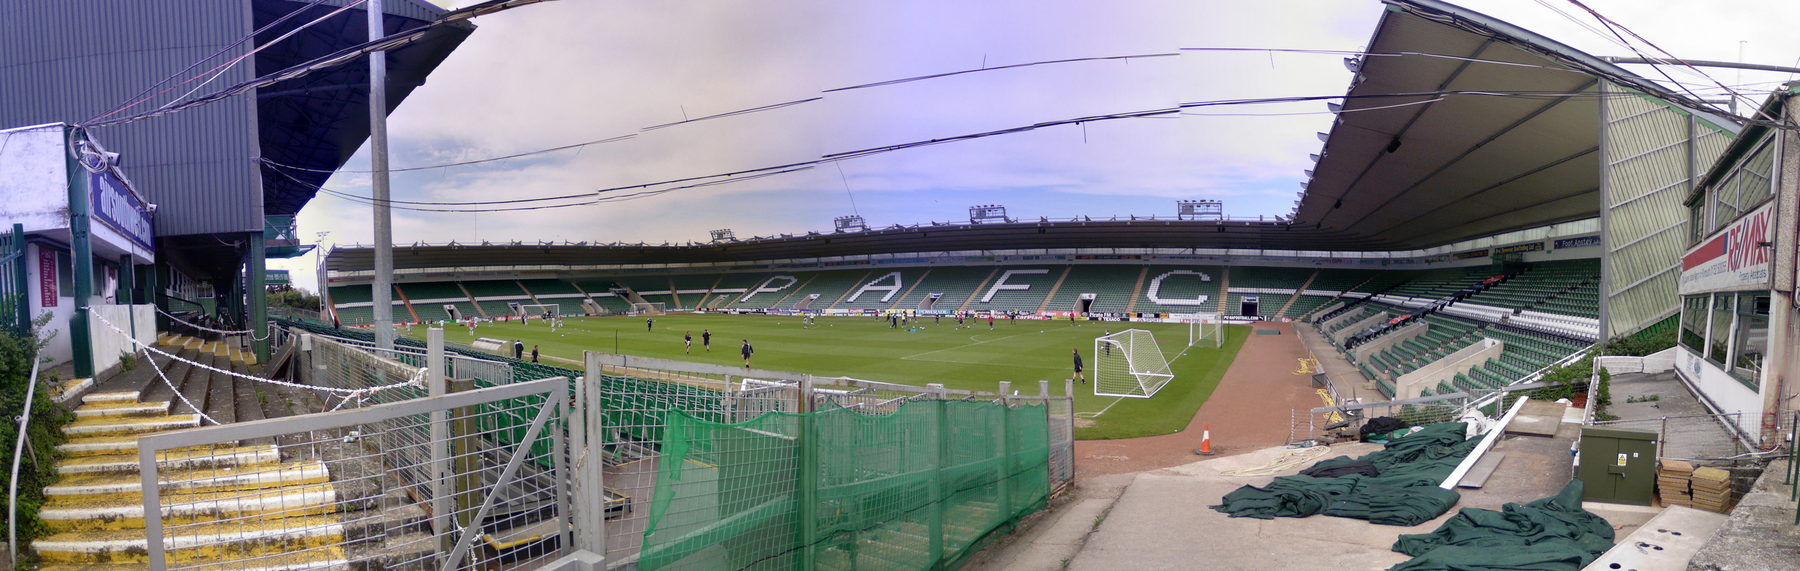 Inside Home Park From Corner Of Mayflower And Barn Before Reserve Match In The